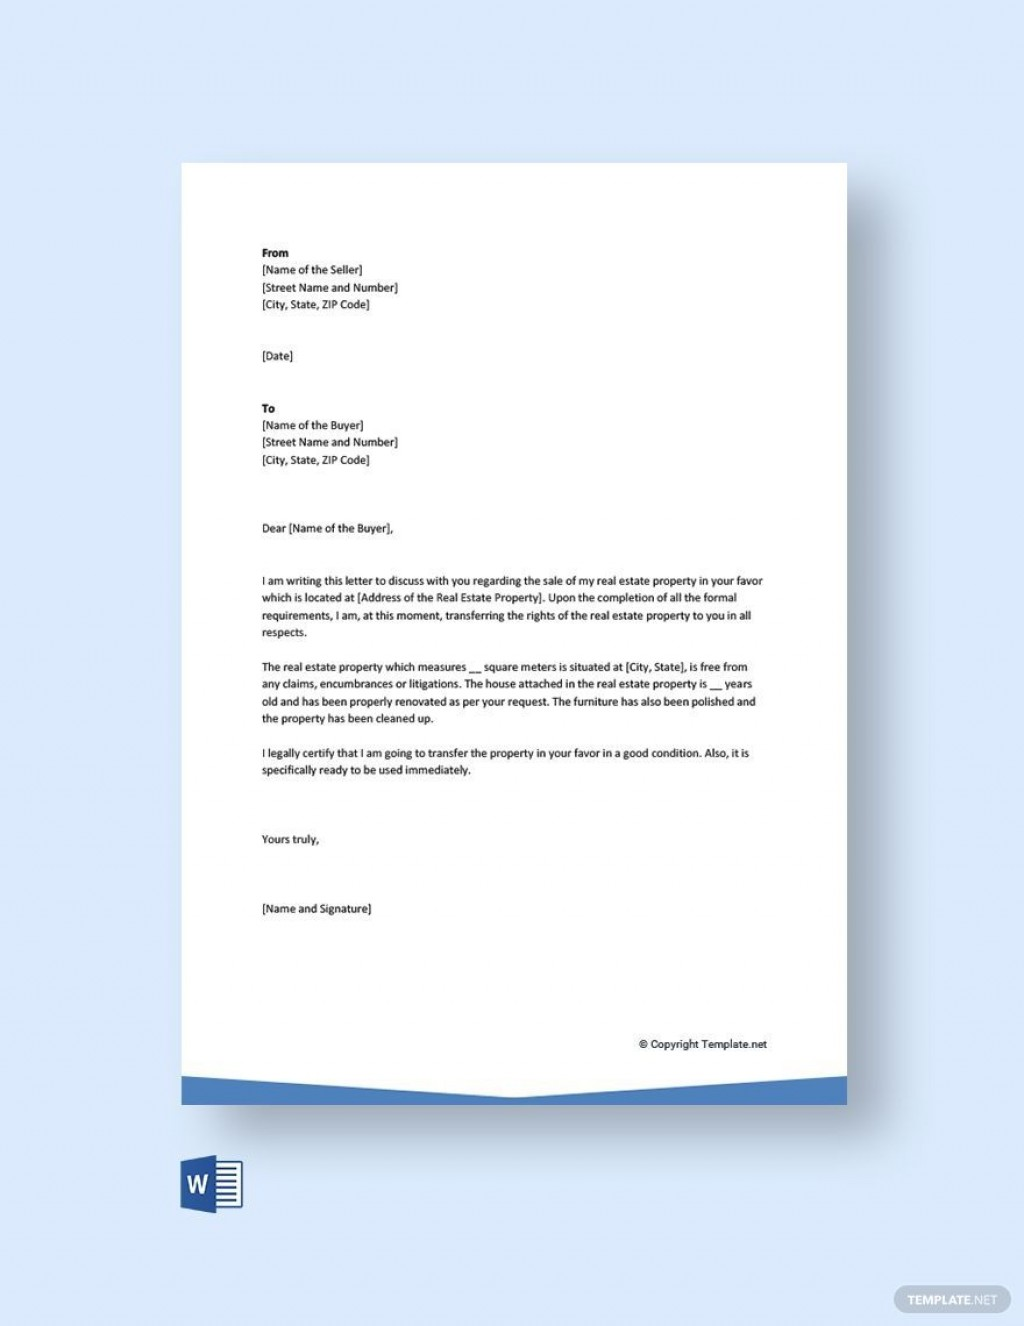 004 Exceptional Free Letter Writing Template Download High Definition Large